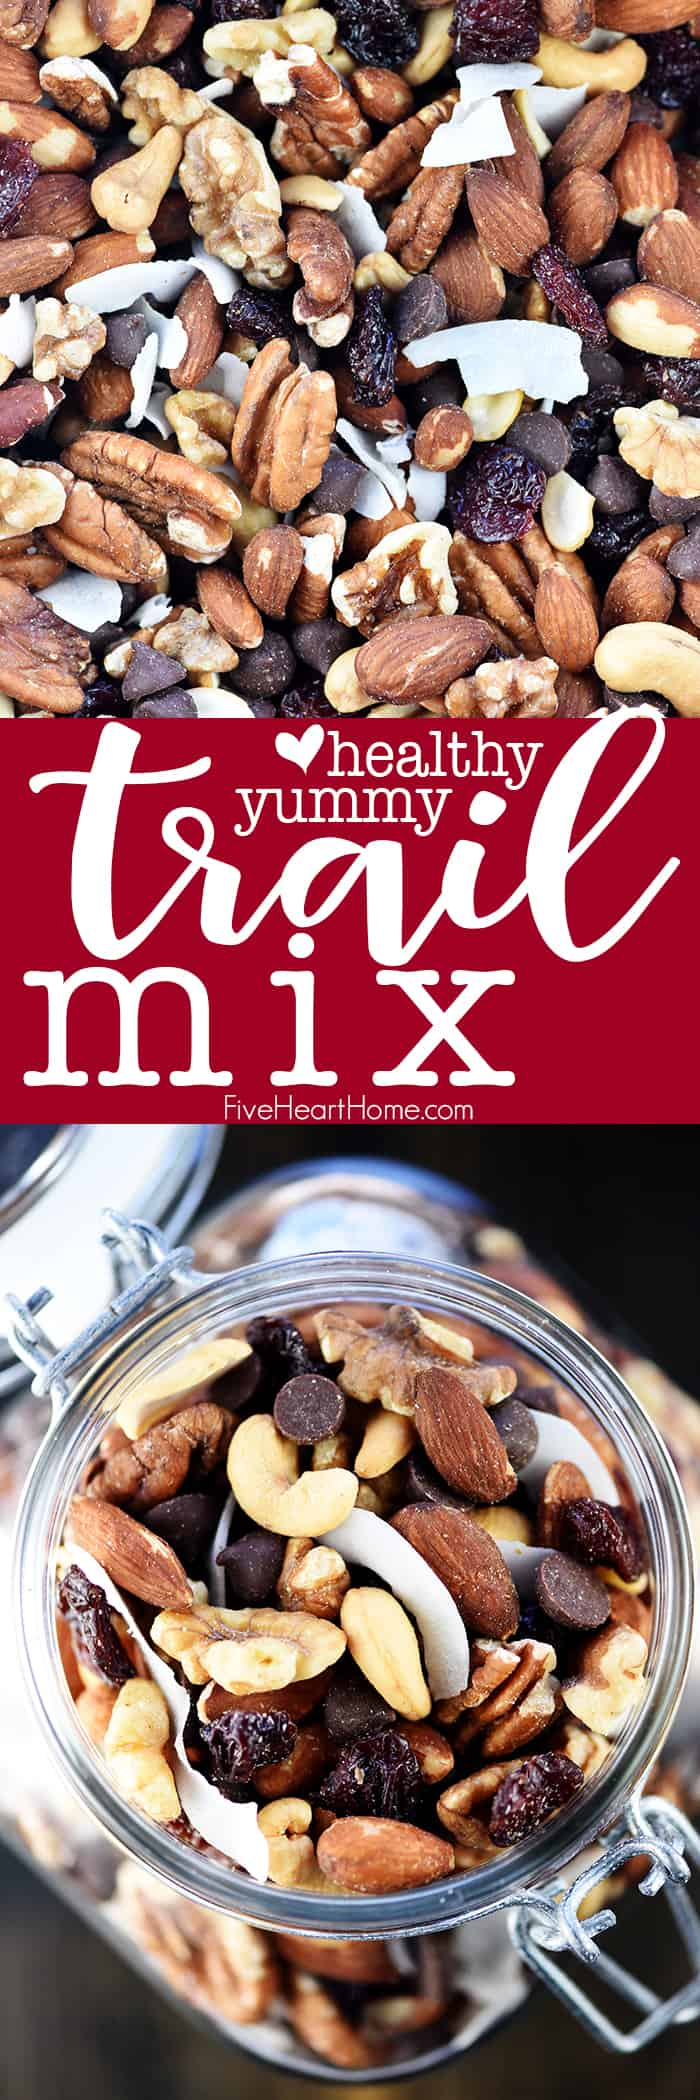 Trail Mix collage with close up and jar